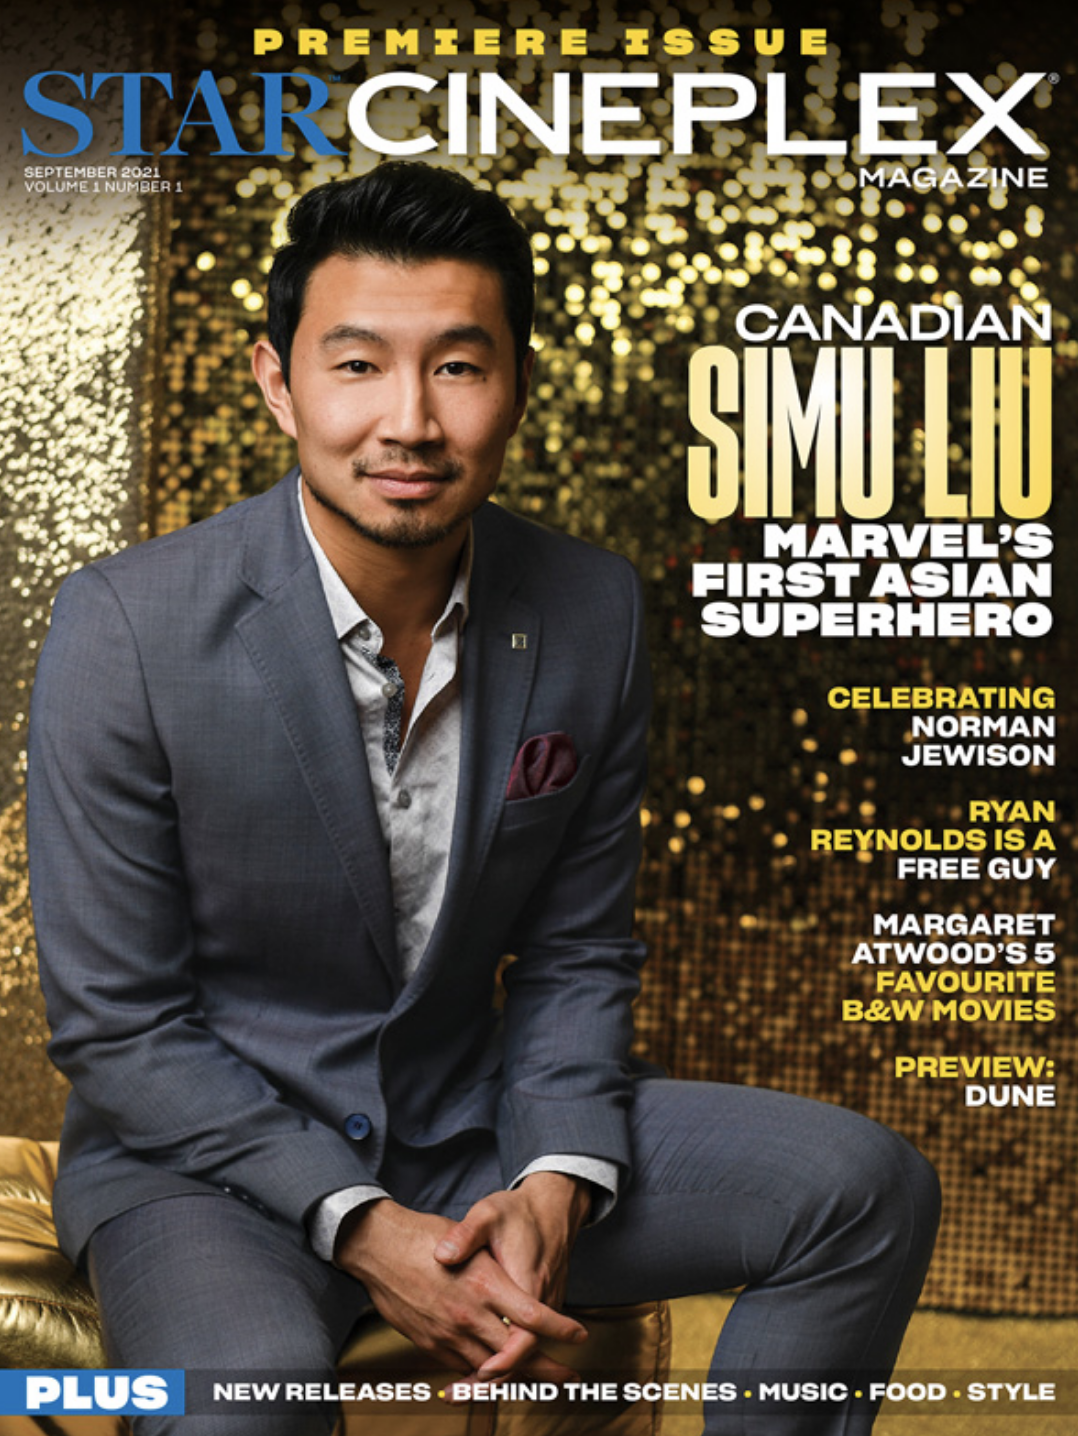 Introducing the debut issue of Star Cineplex magazine